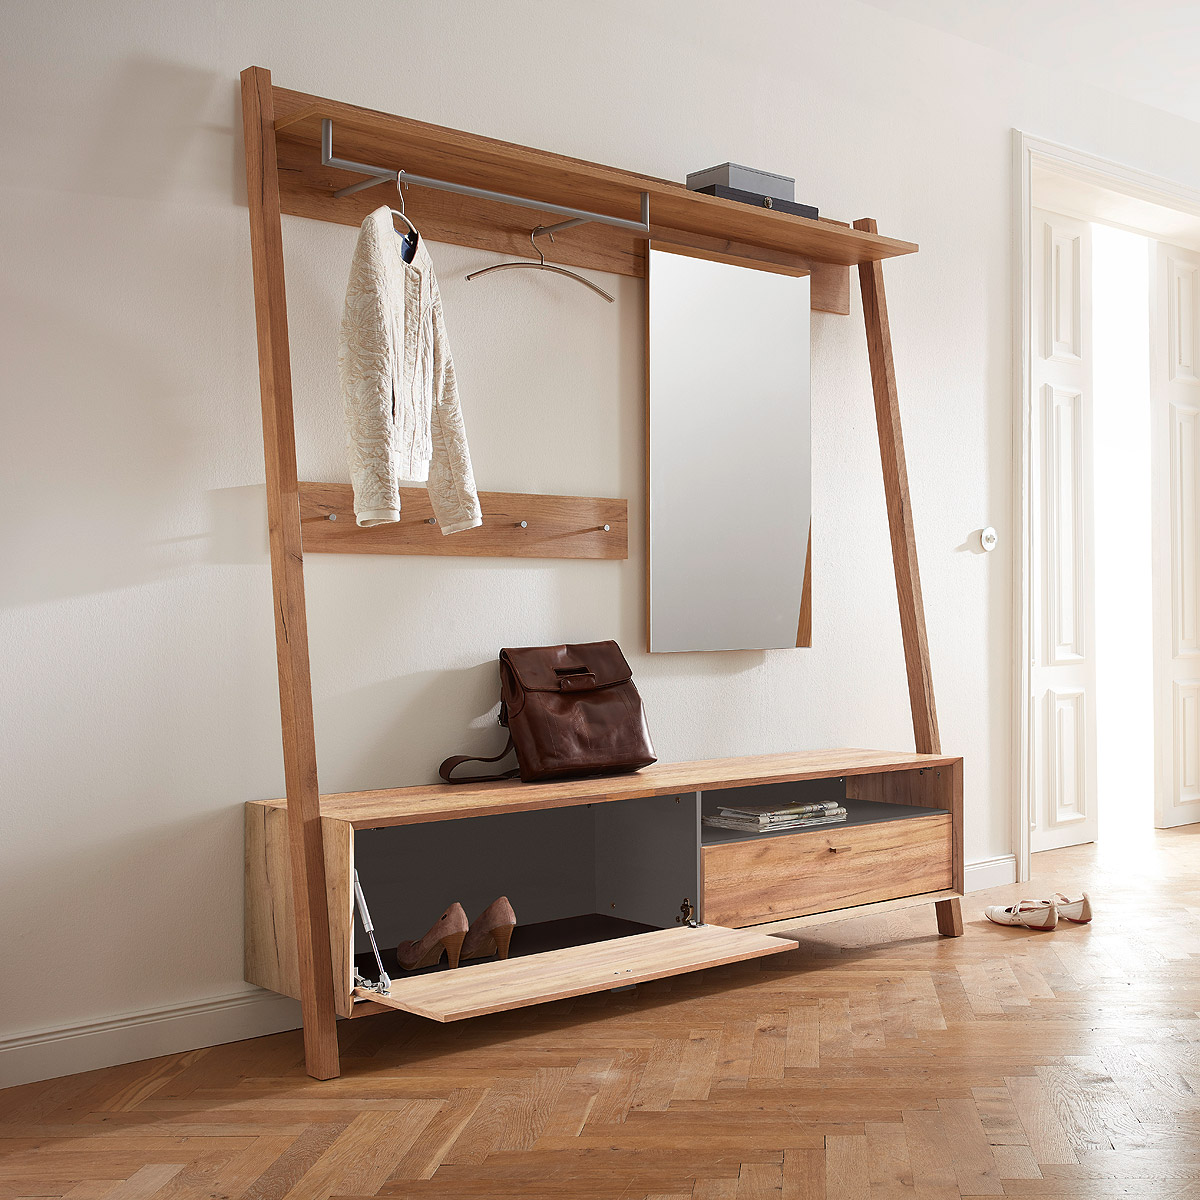 garderobe calvi flurm bel mit spiegel in navarra eiche steingrau von germania ebay. Black Bedroom Furniture Sets. Home Design Ideas